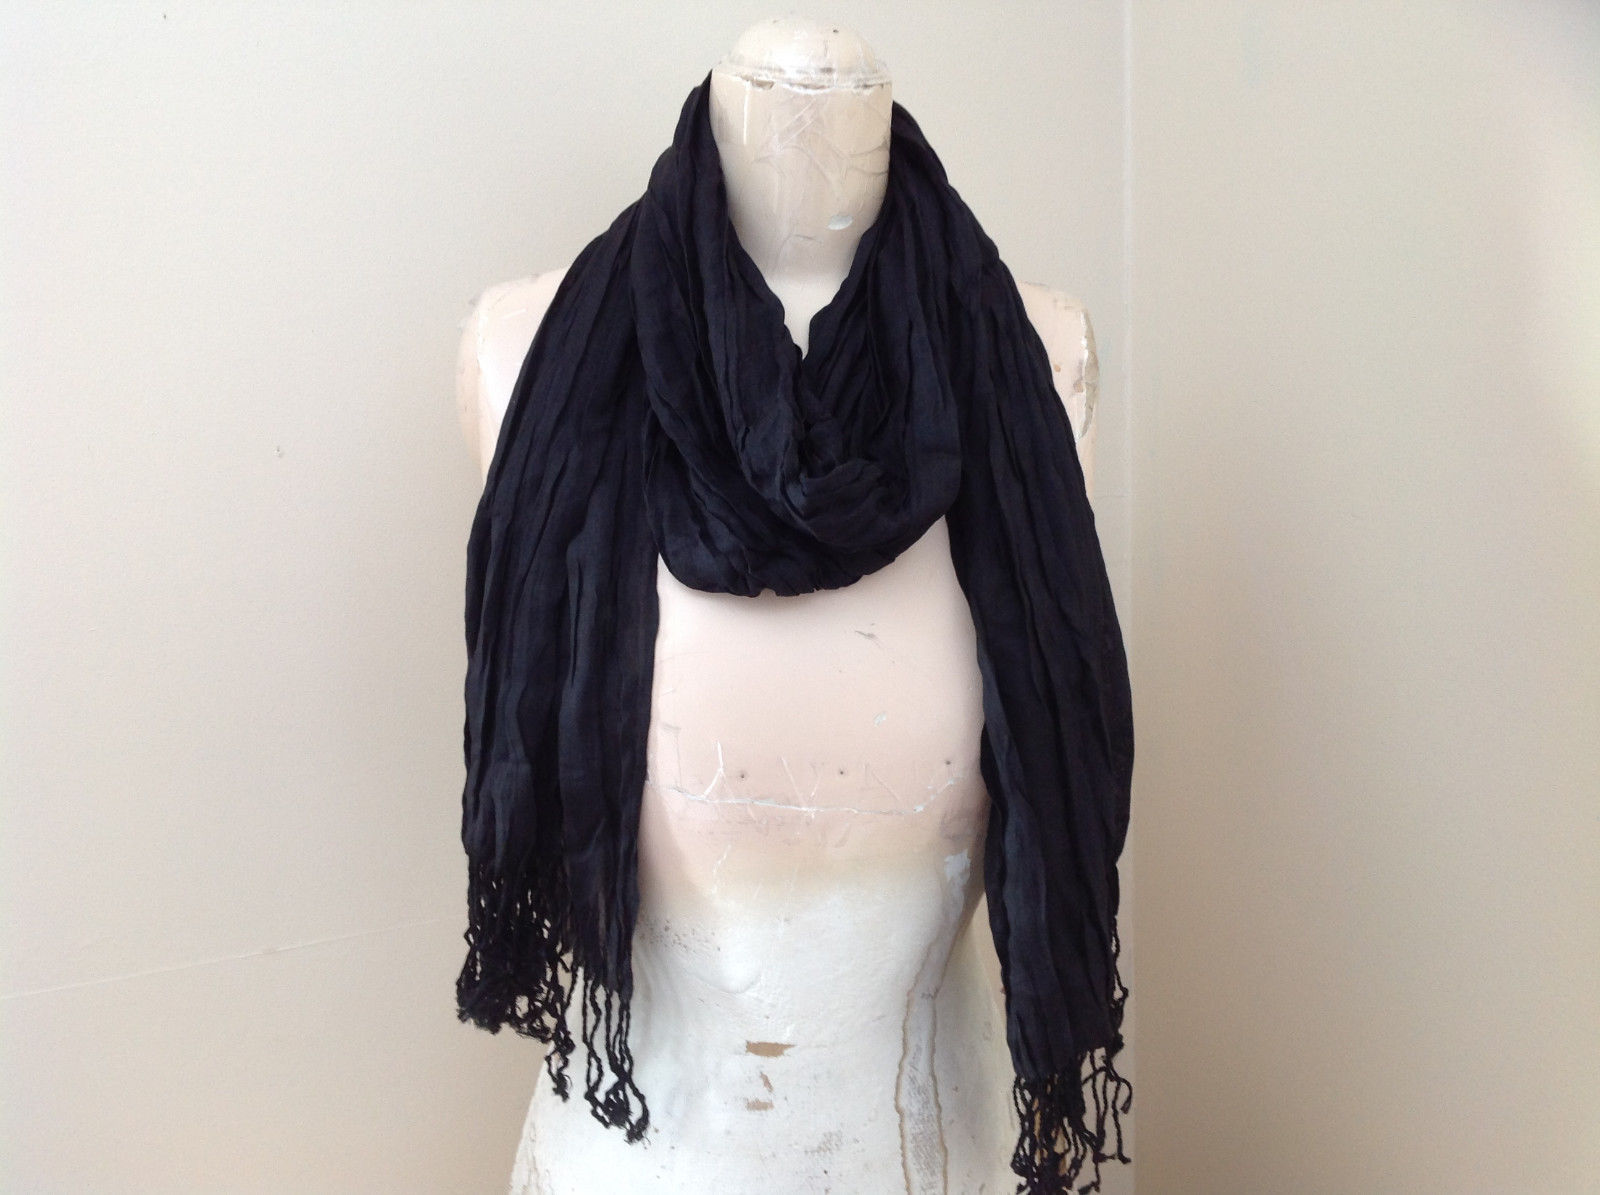 Black Tasseled Scrunched Style Scarf by LOOK Length 65 Inches silk cotton blend